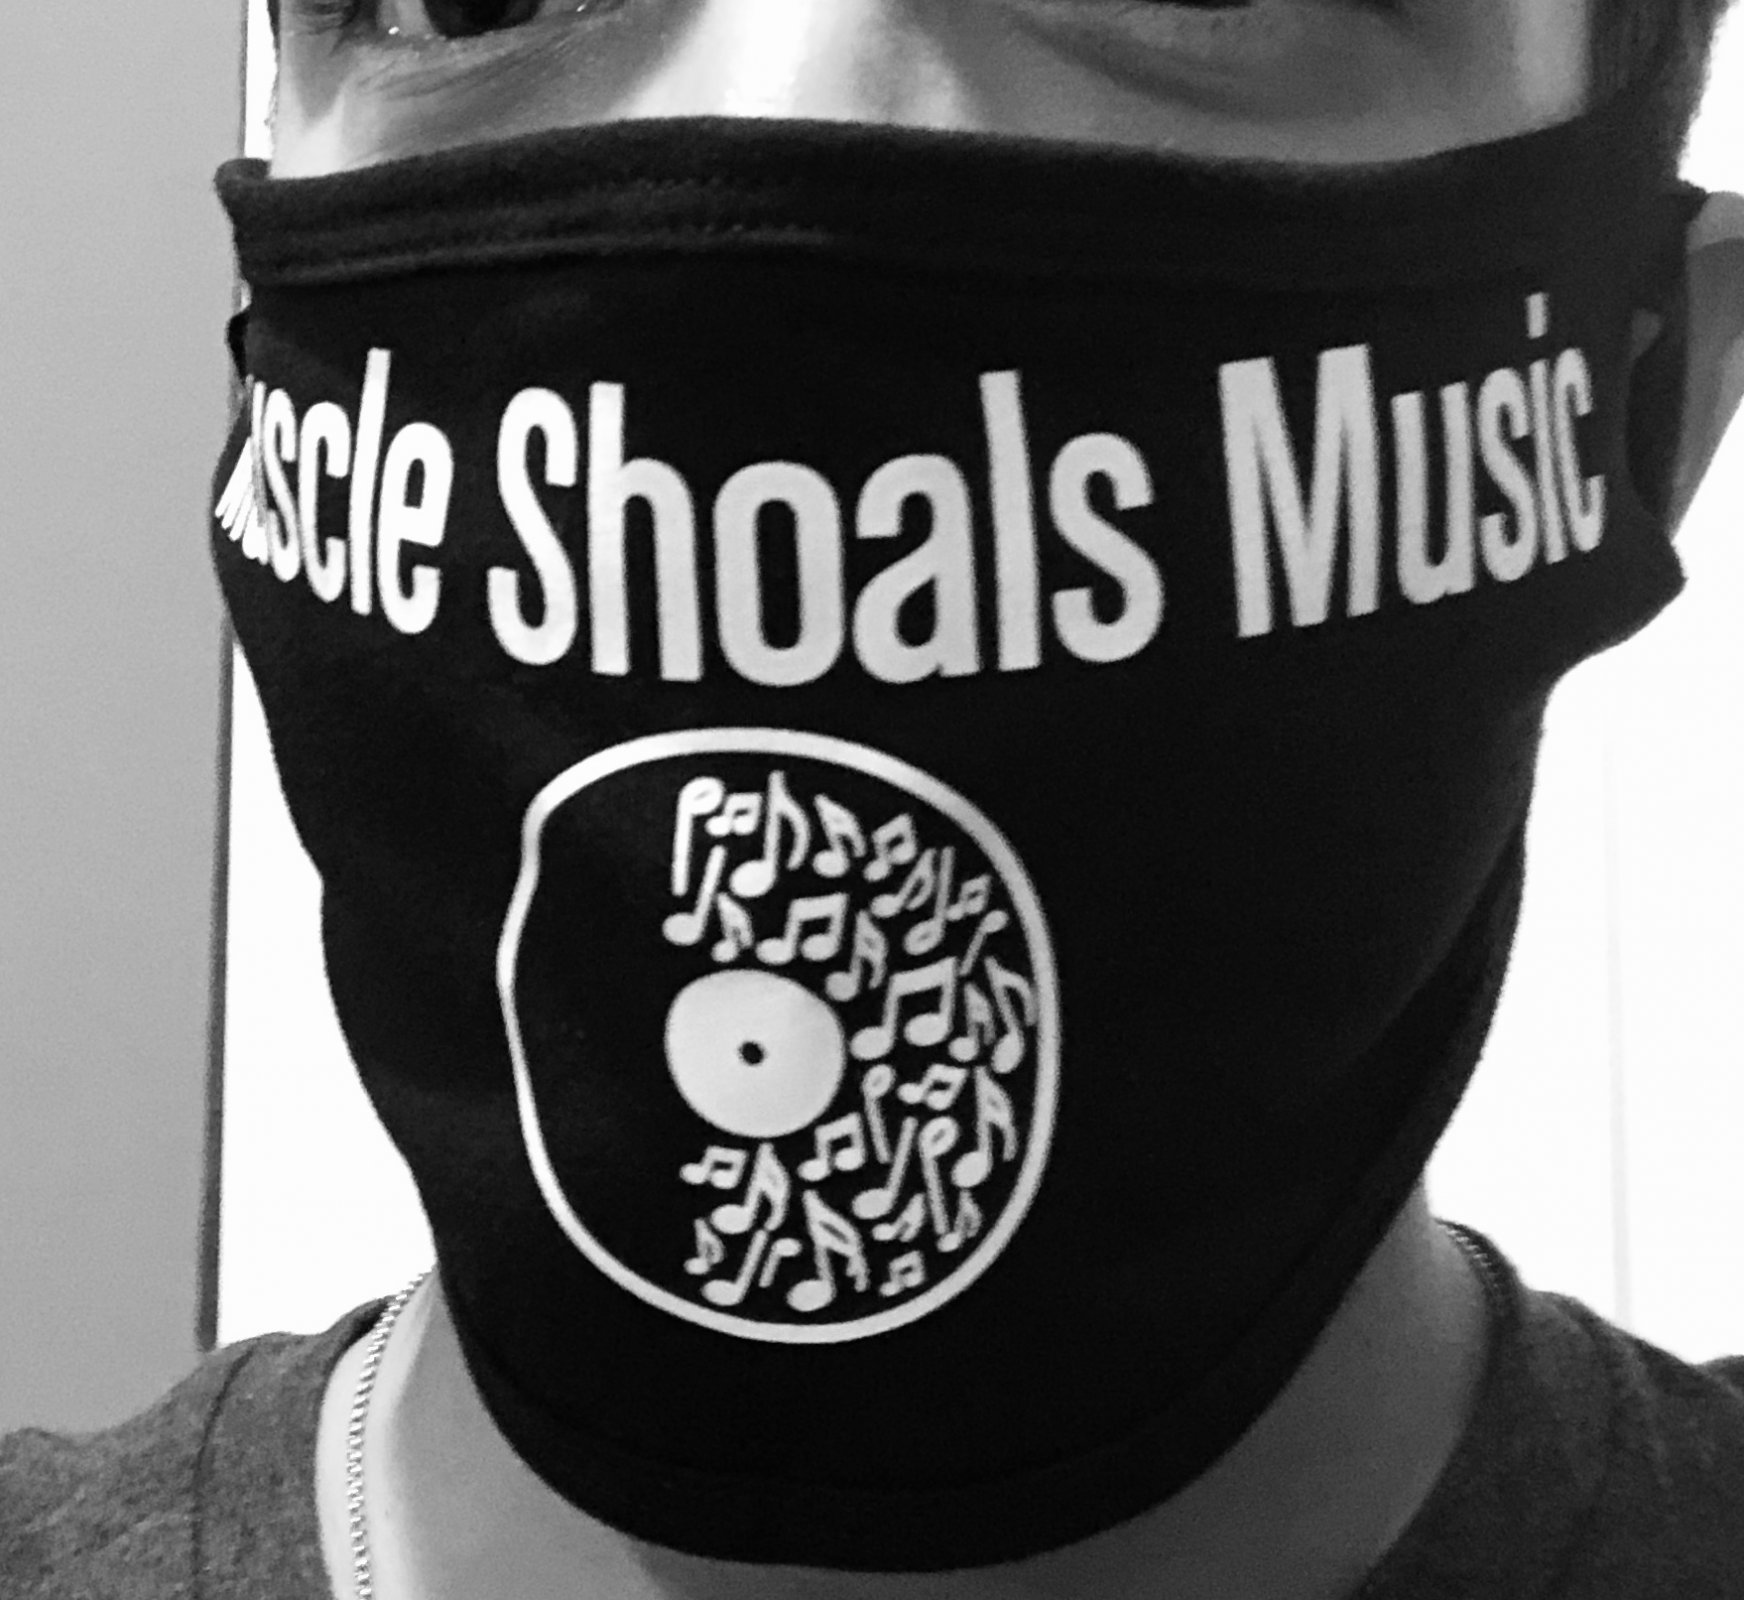 Muscle Shoals Mask